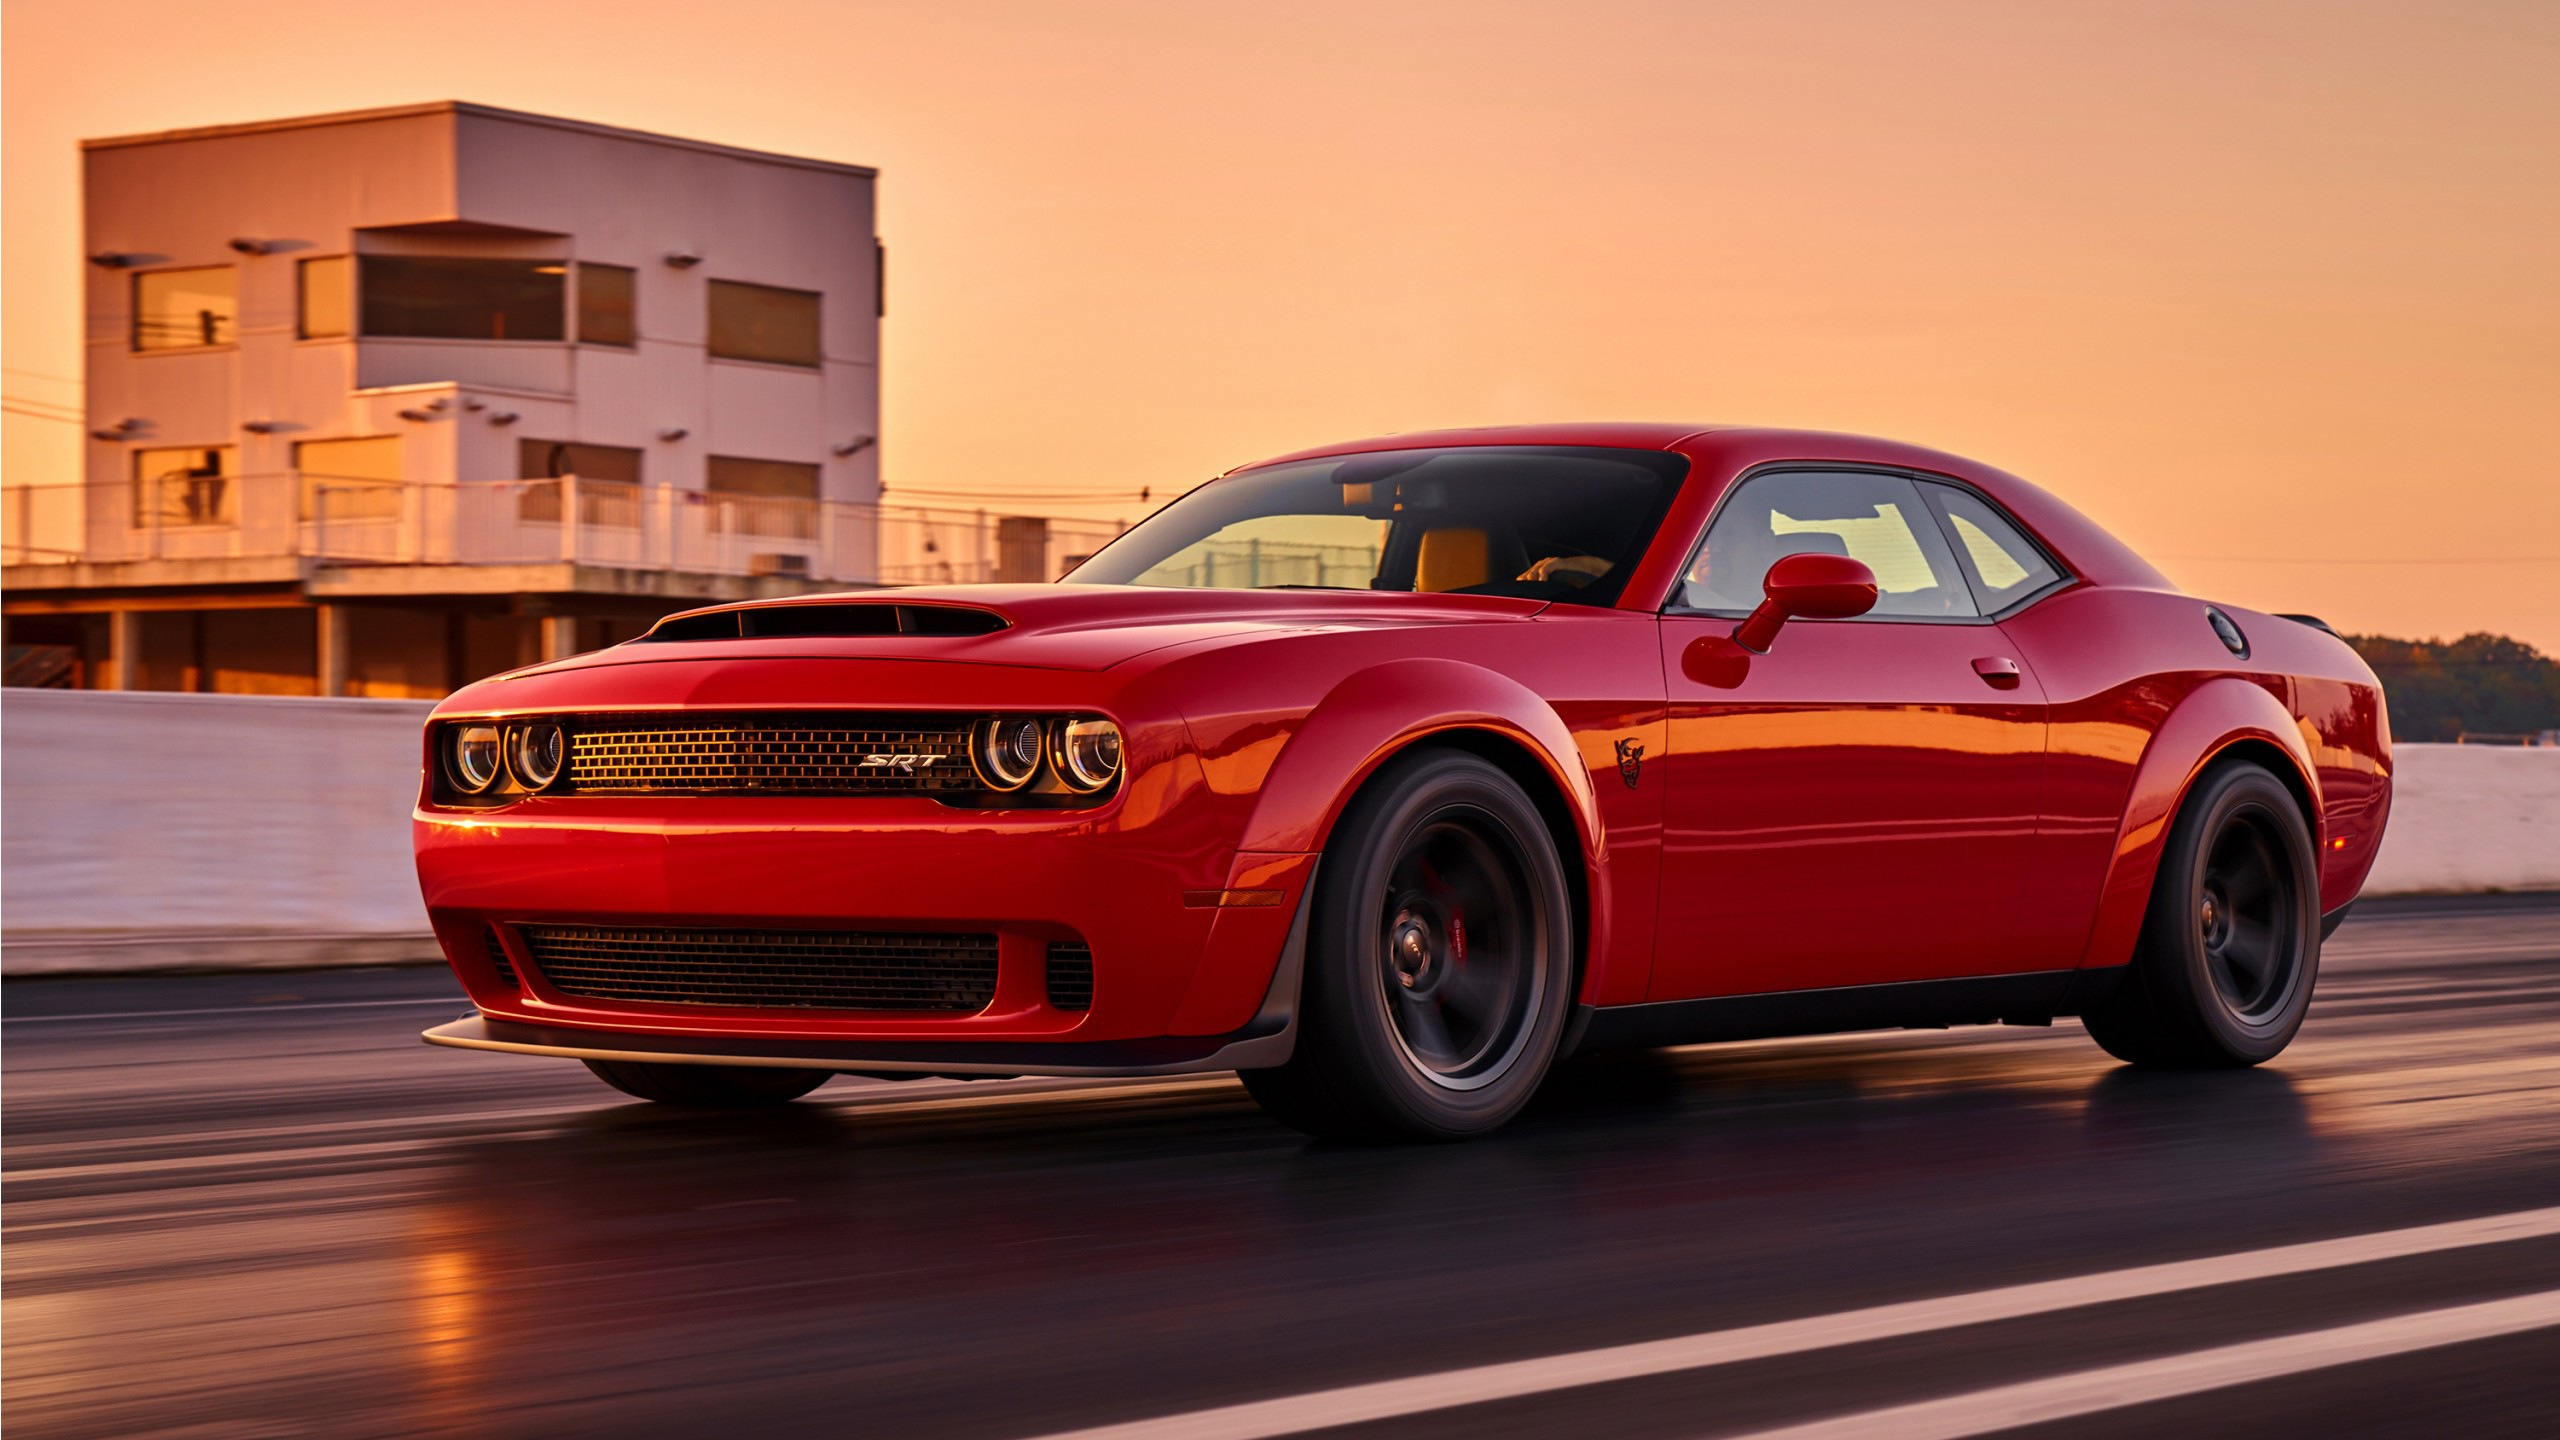 American Muscle Cars Hd Wallpaper Theme Top Speed Motors